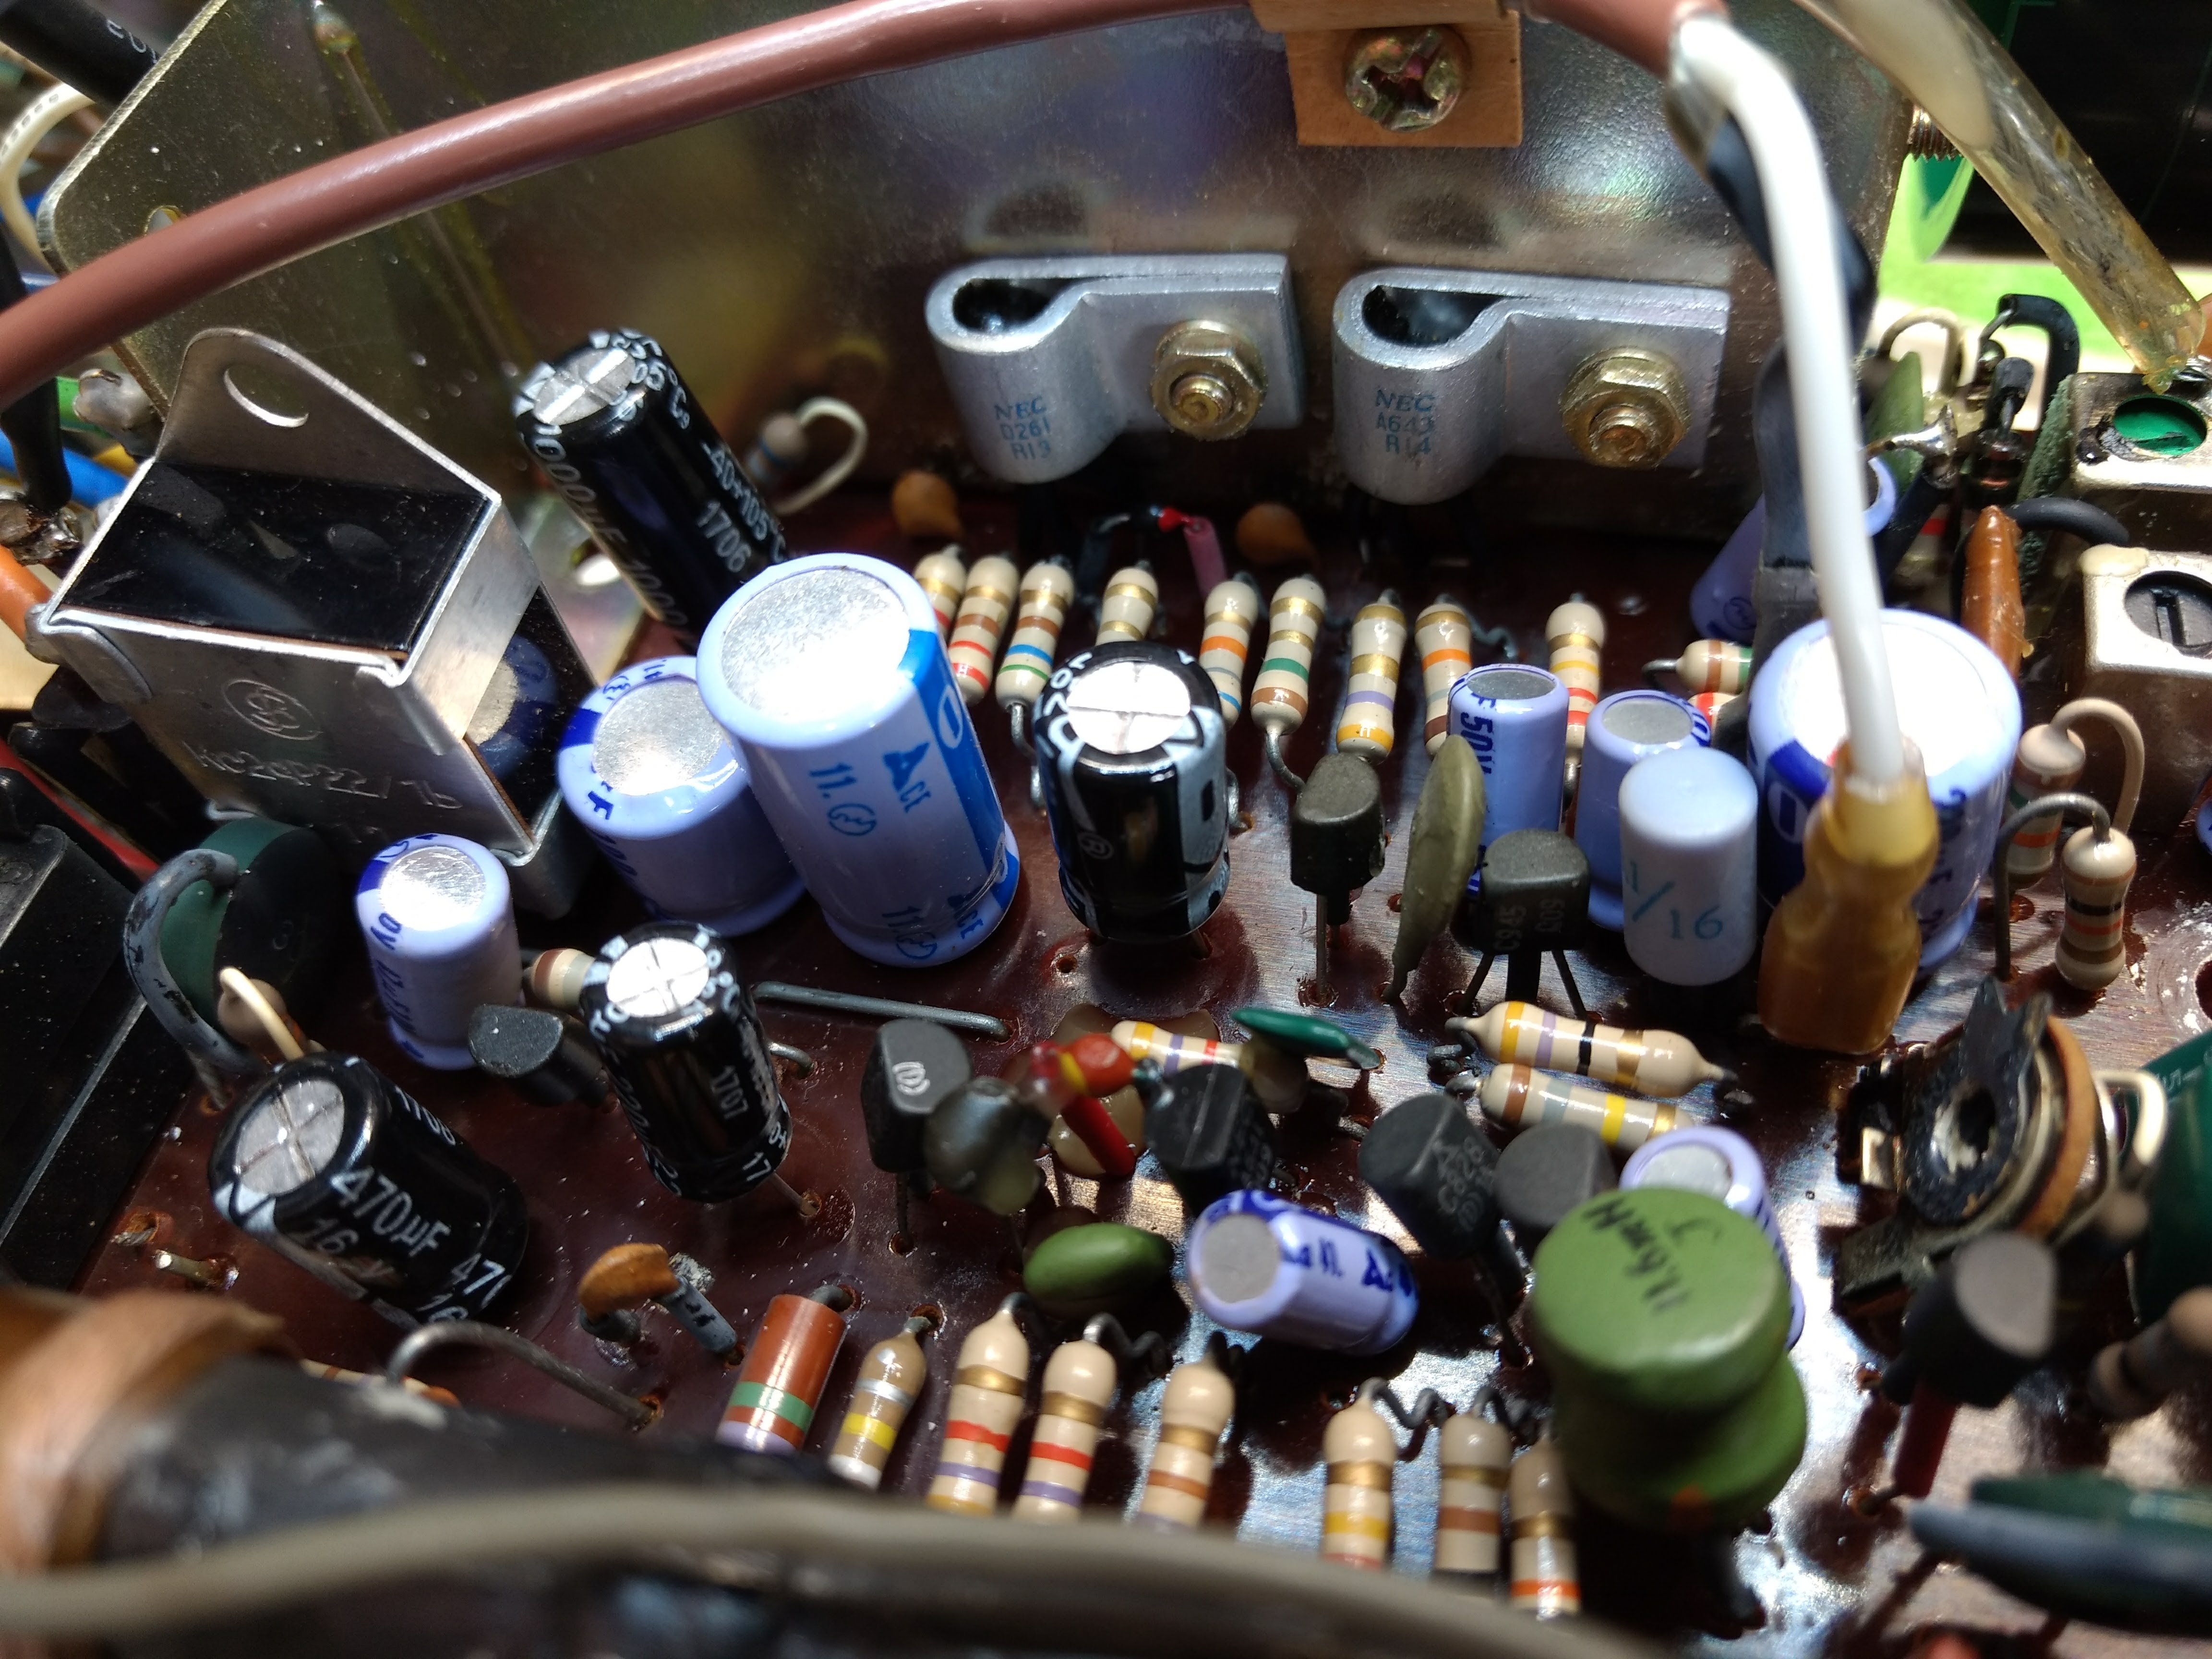 Capacitor replacement